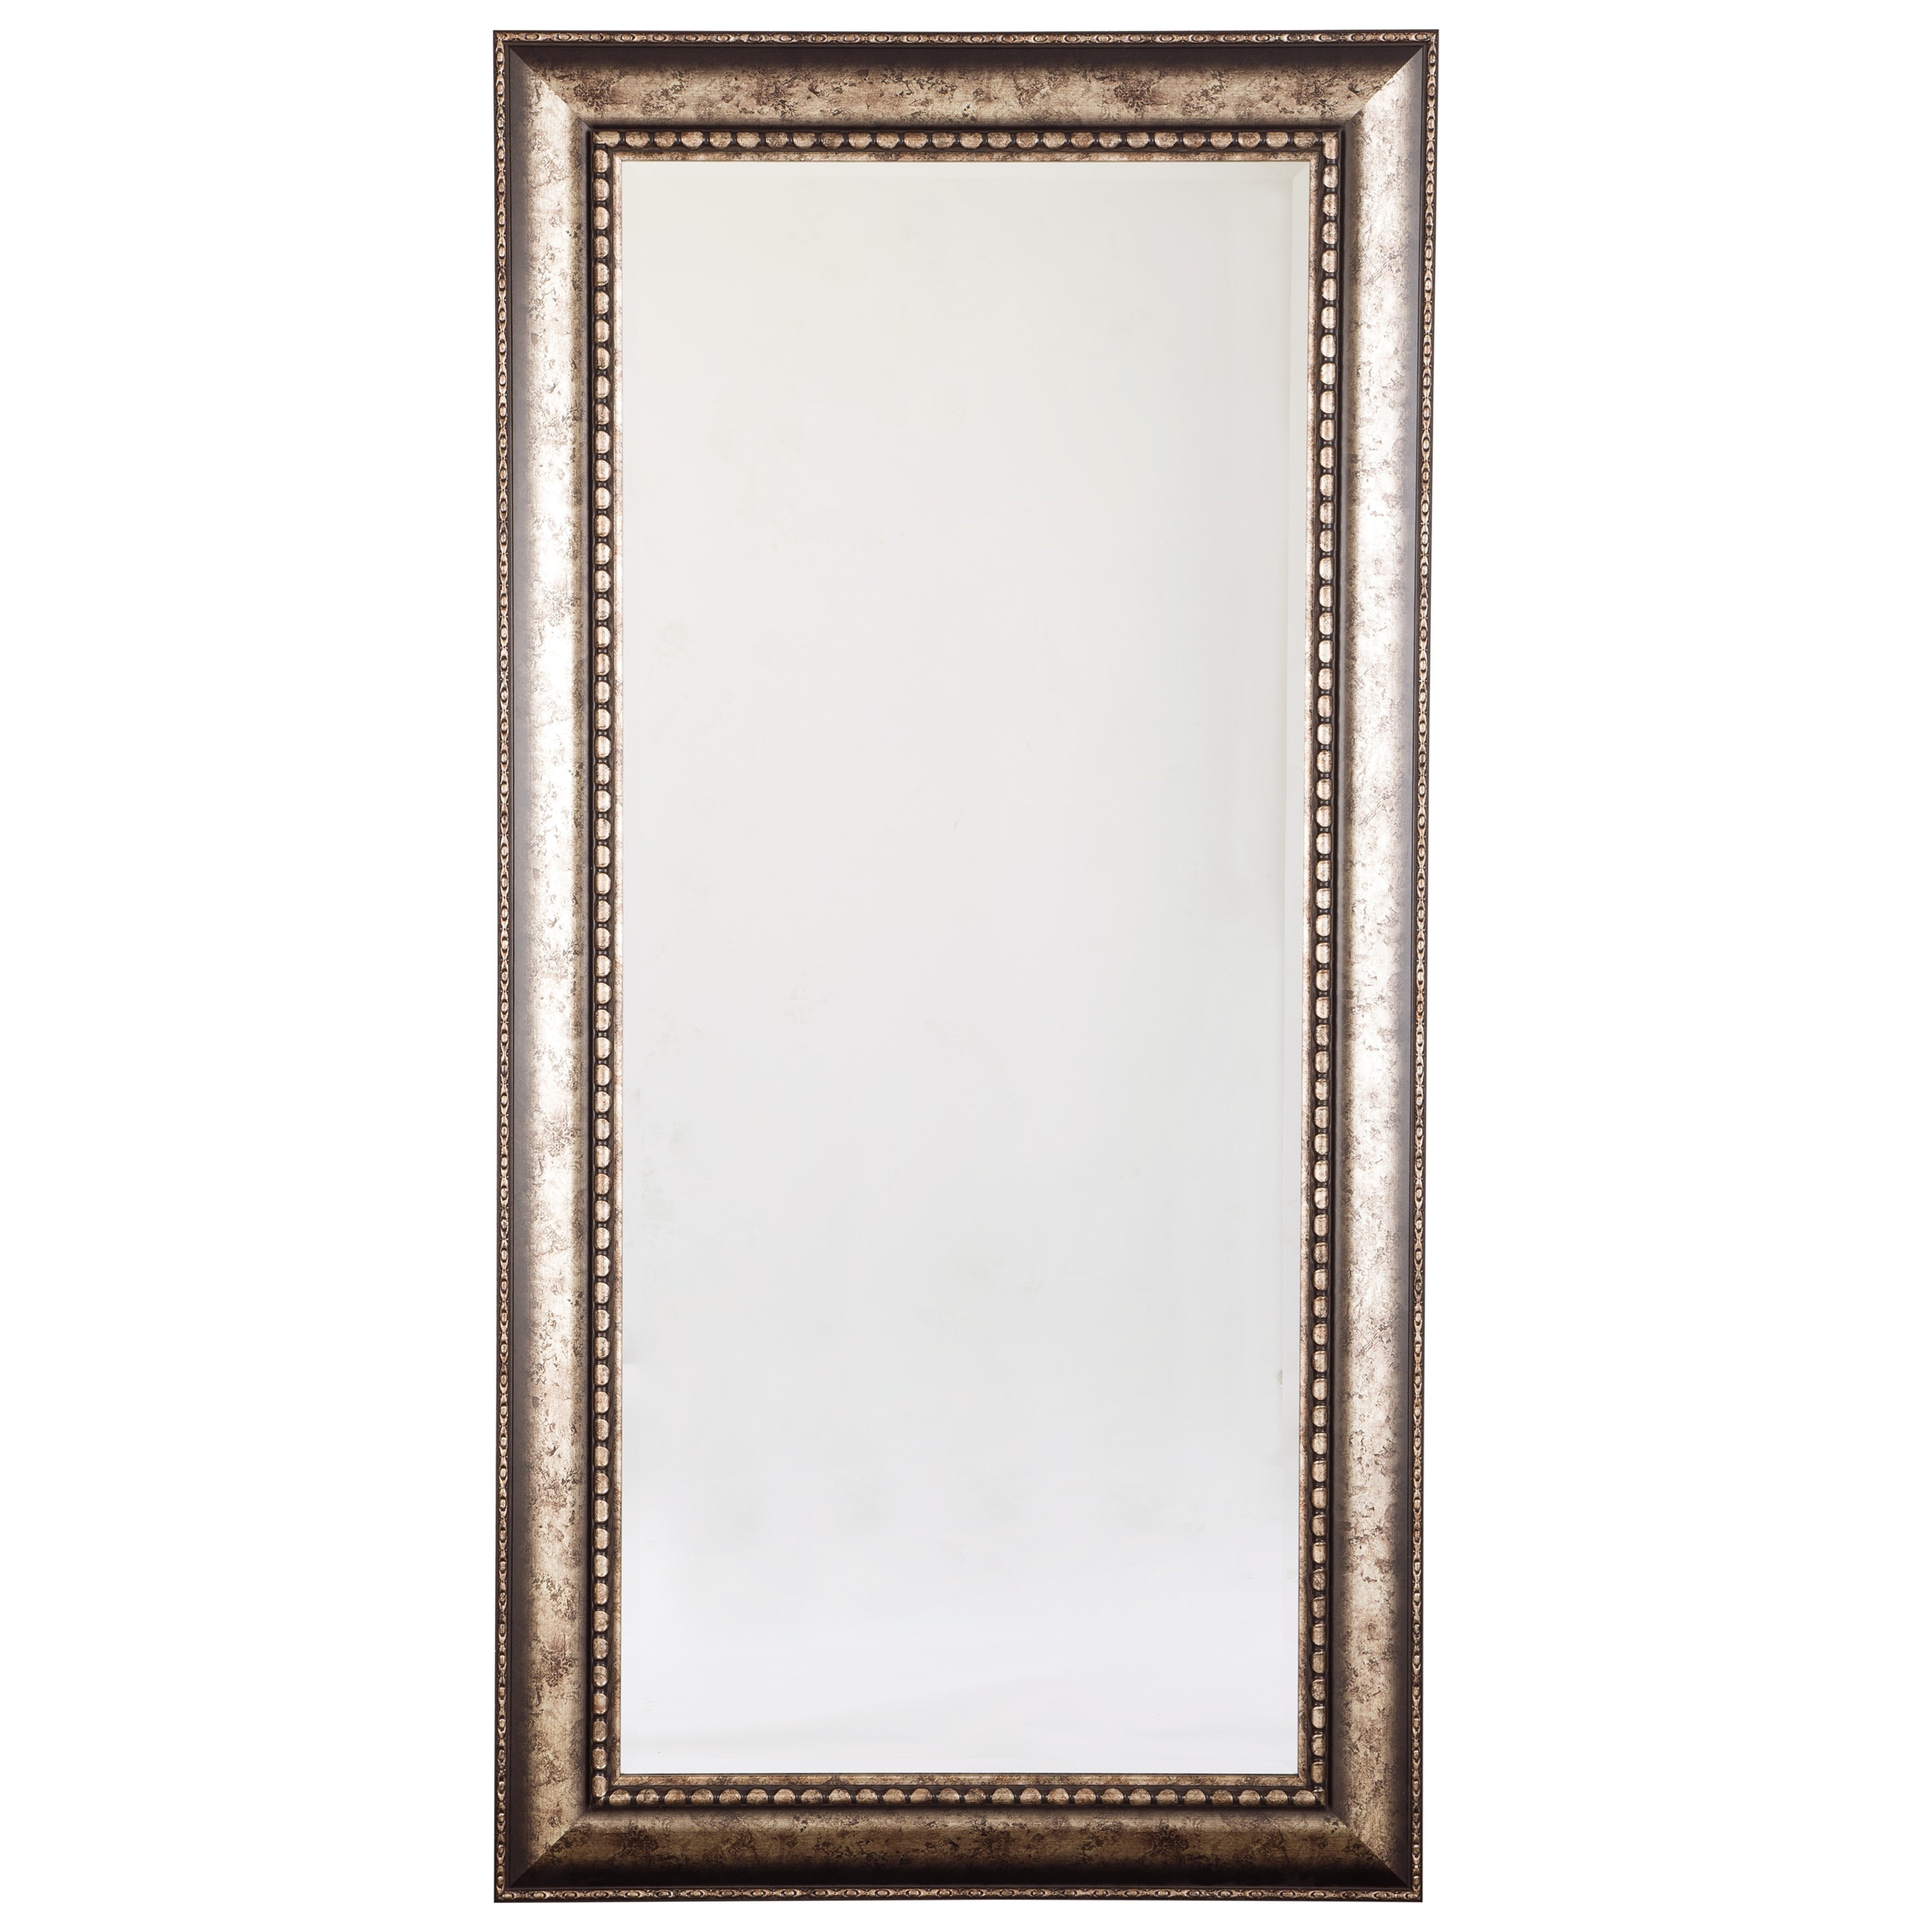 Accent Mirrors Dulal Antique Silver Finish Accent Mirror by Signature Design by Ashley at Home Furnishings Direct